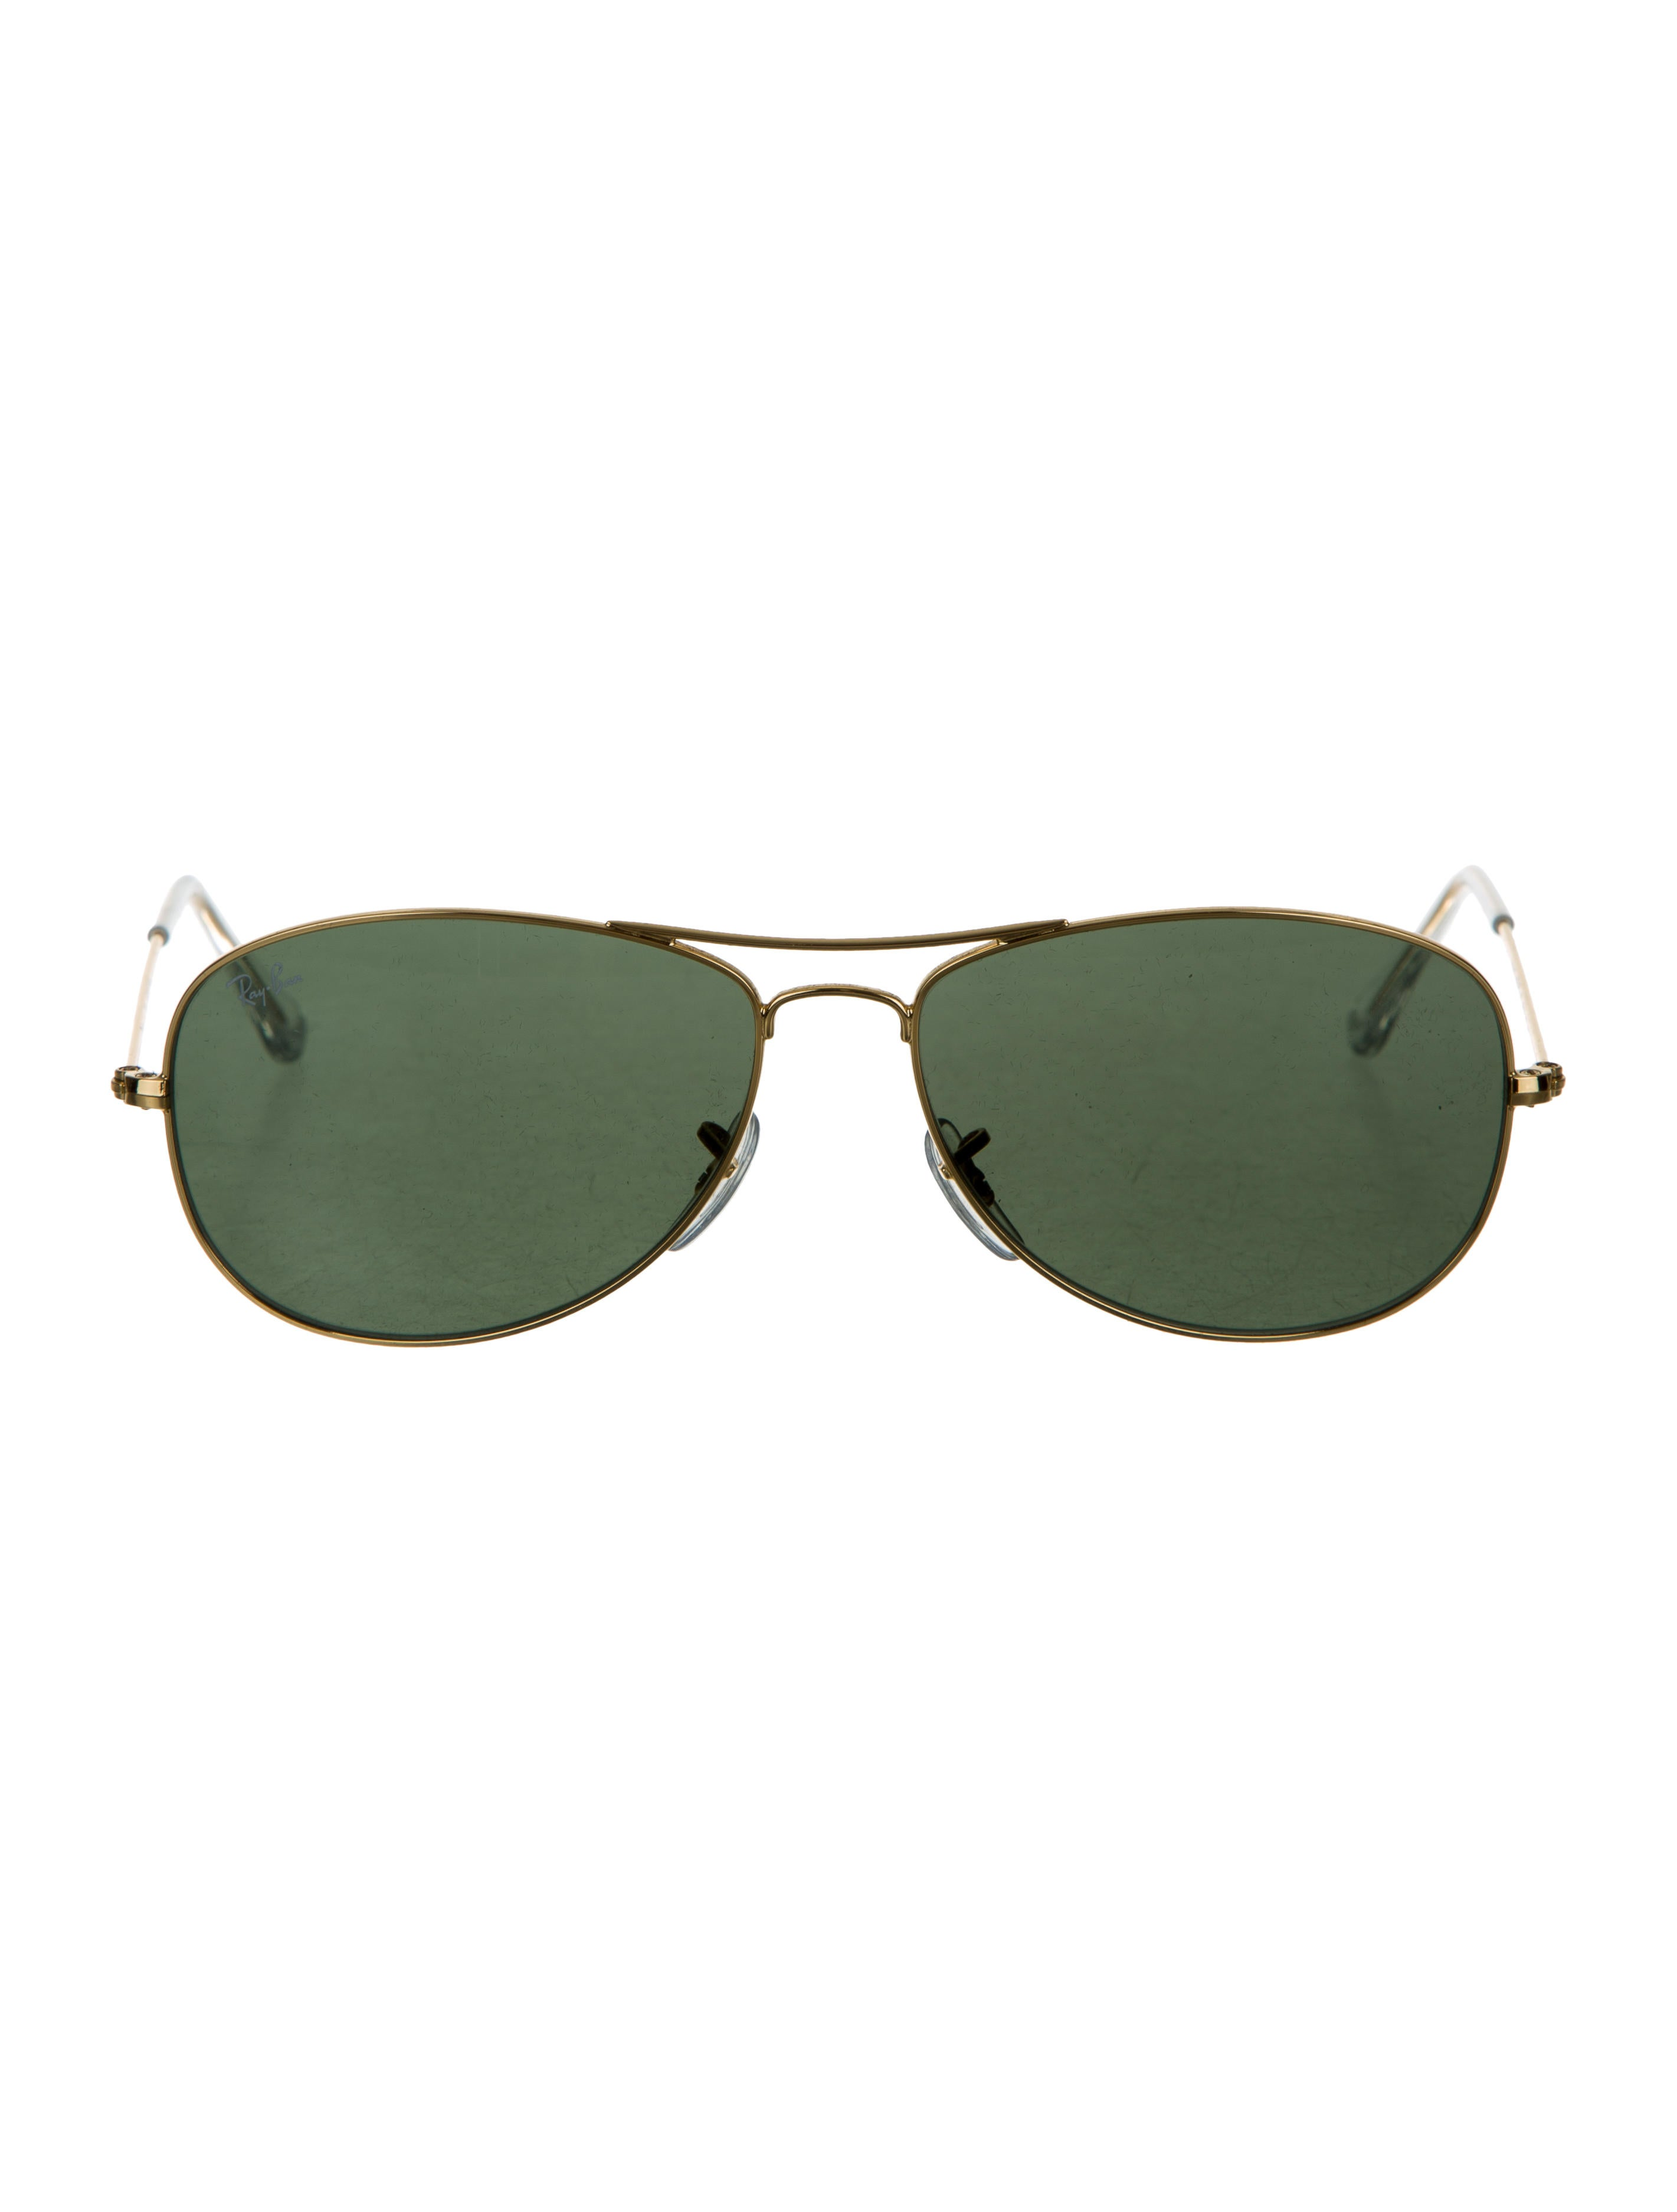 a35082fd2a Where Are Ray Ban Cockpit Sunglasses Made « Heritage Malta